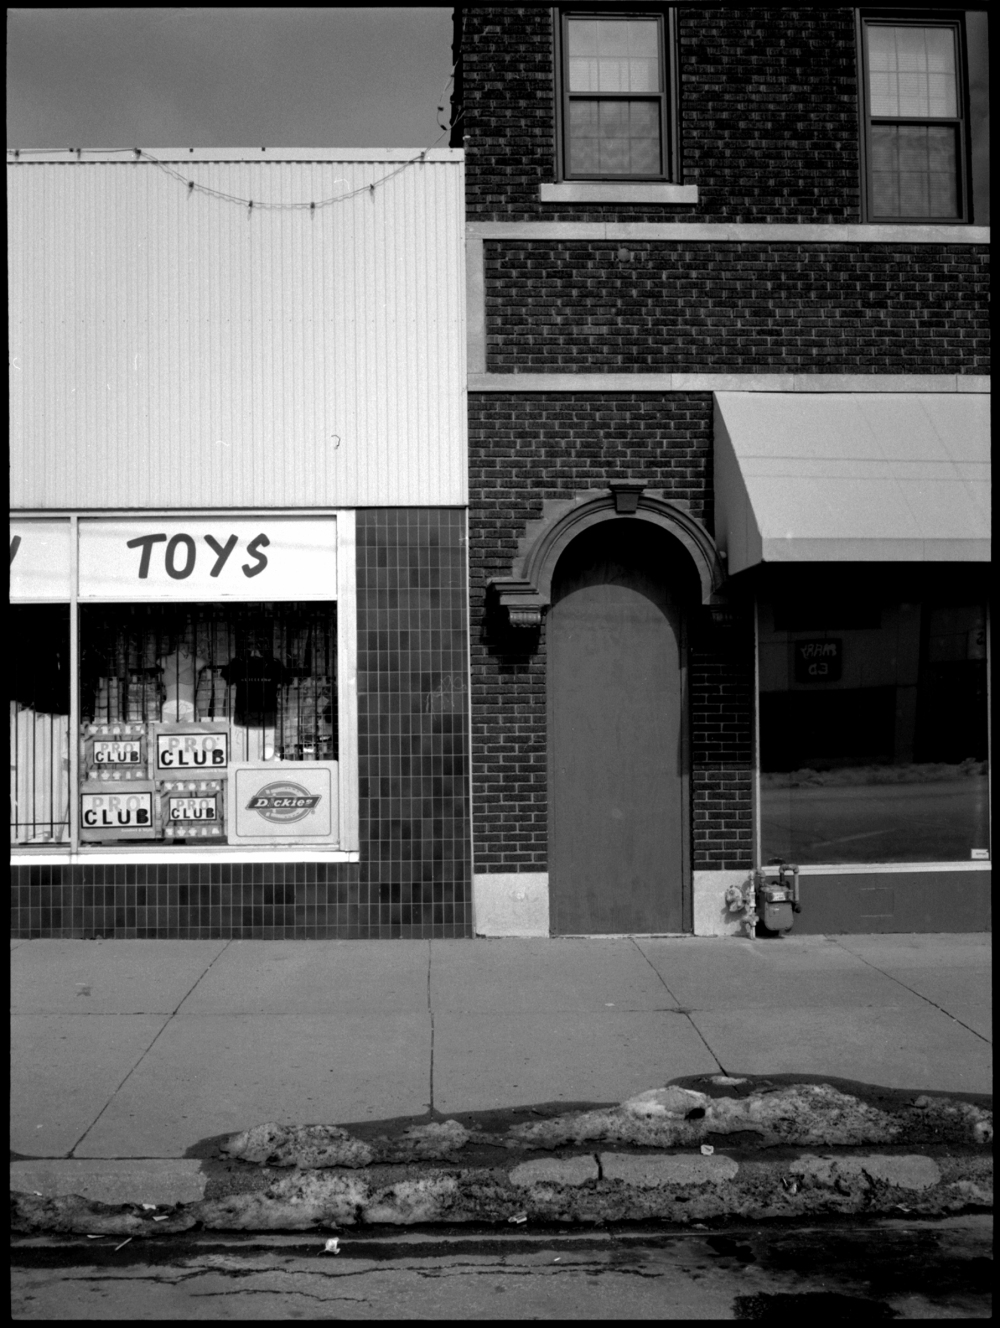 kck stores - grant edwards photography